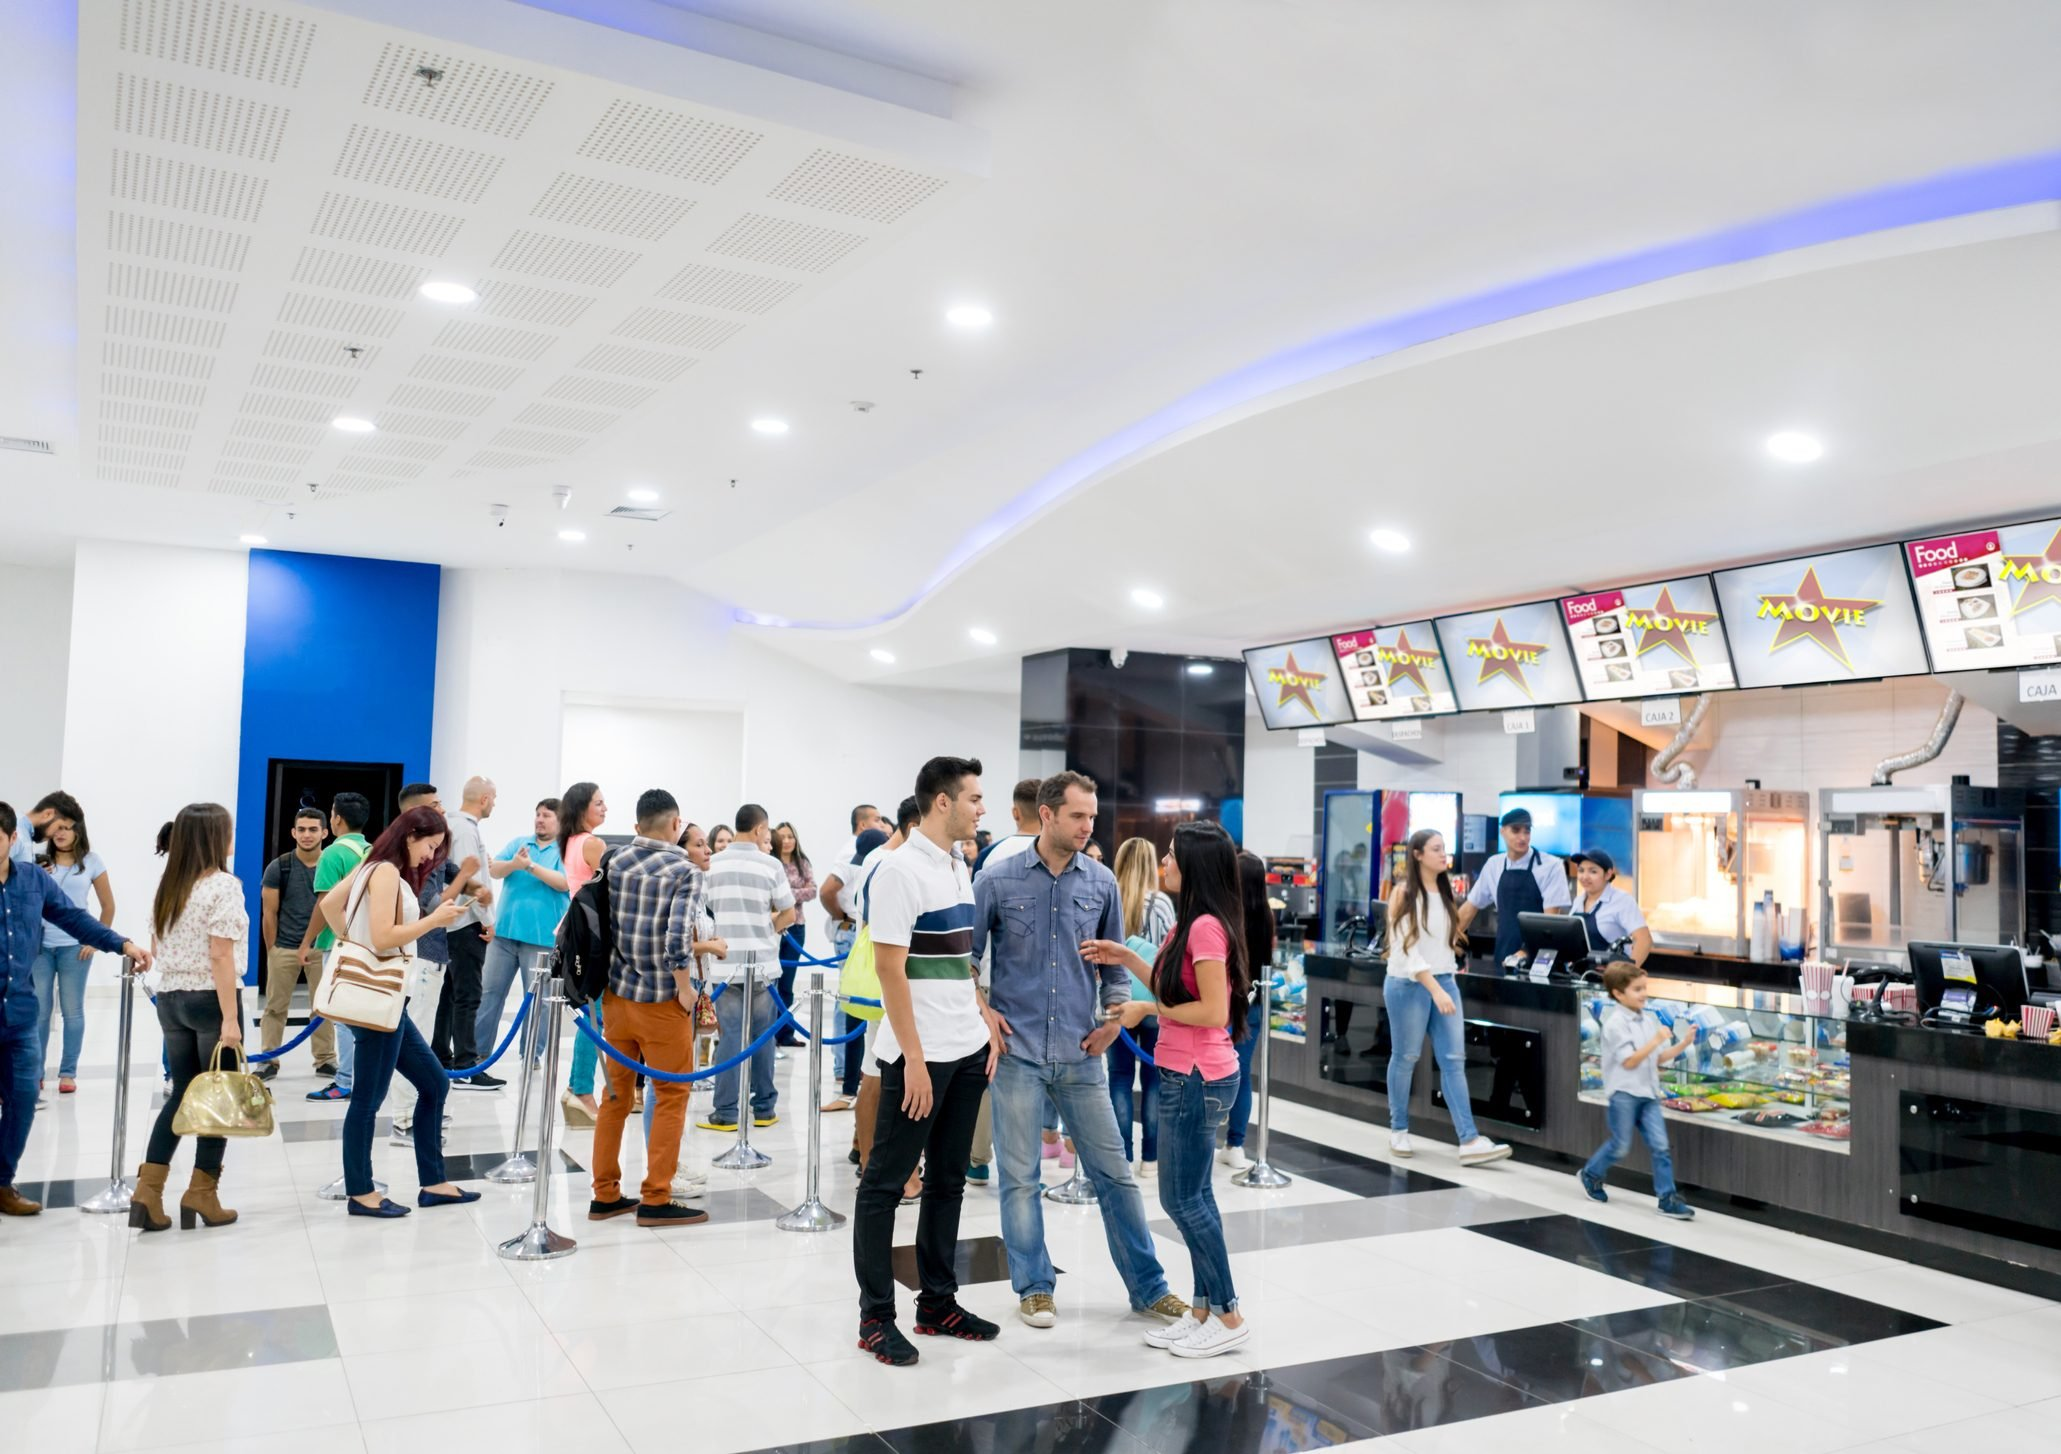 People buying food at the cinema before watching a movie